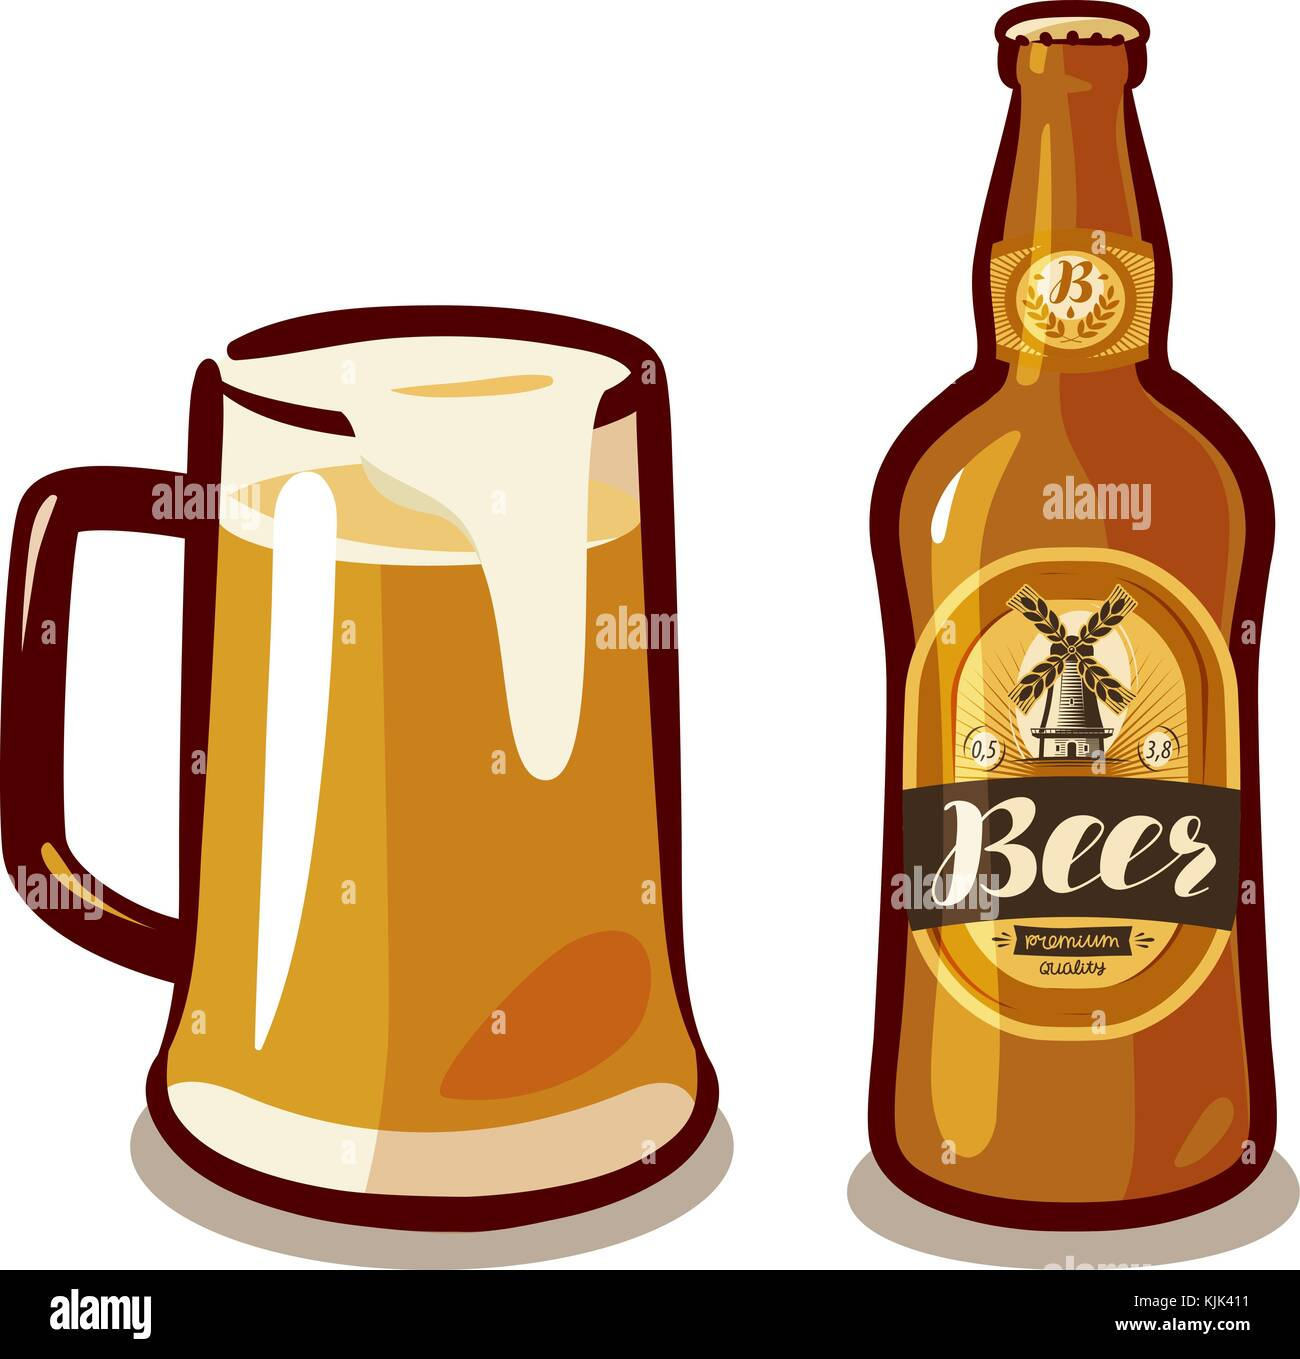 Pub illustration stock photos pub illustration stock for Craft beer pubs near me